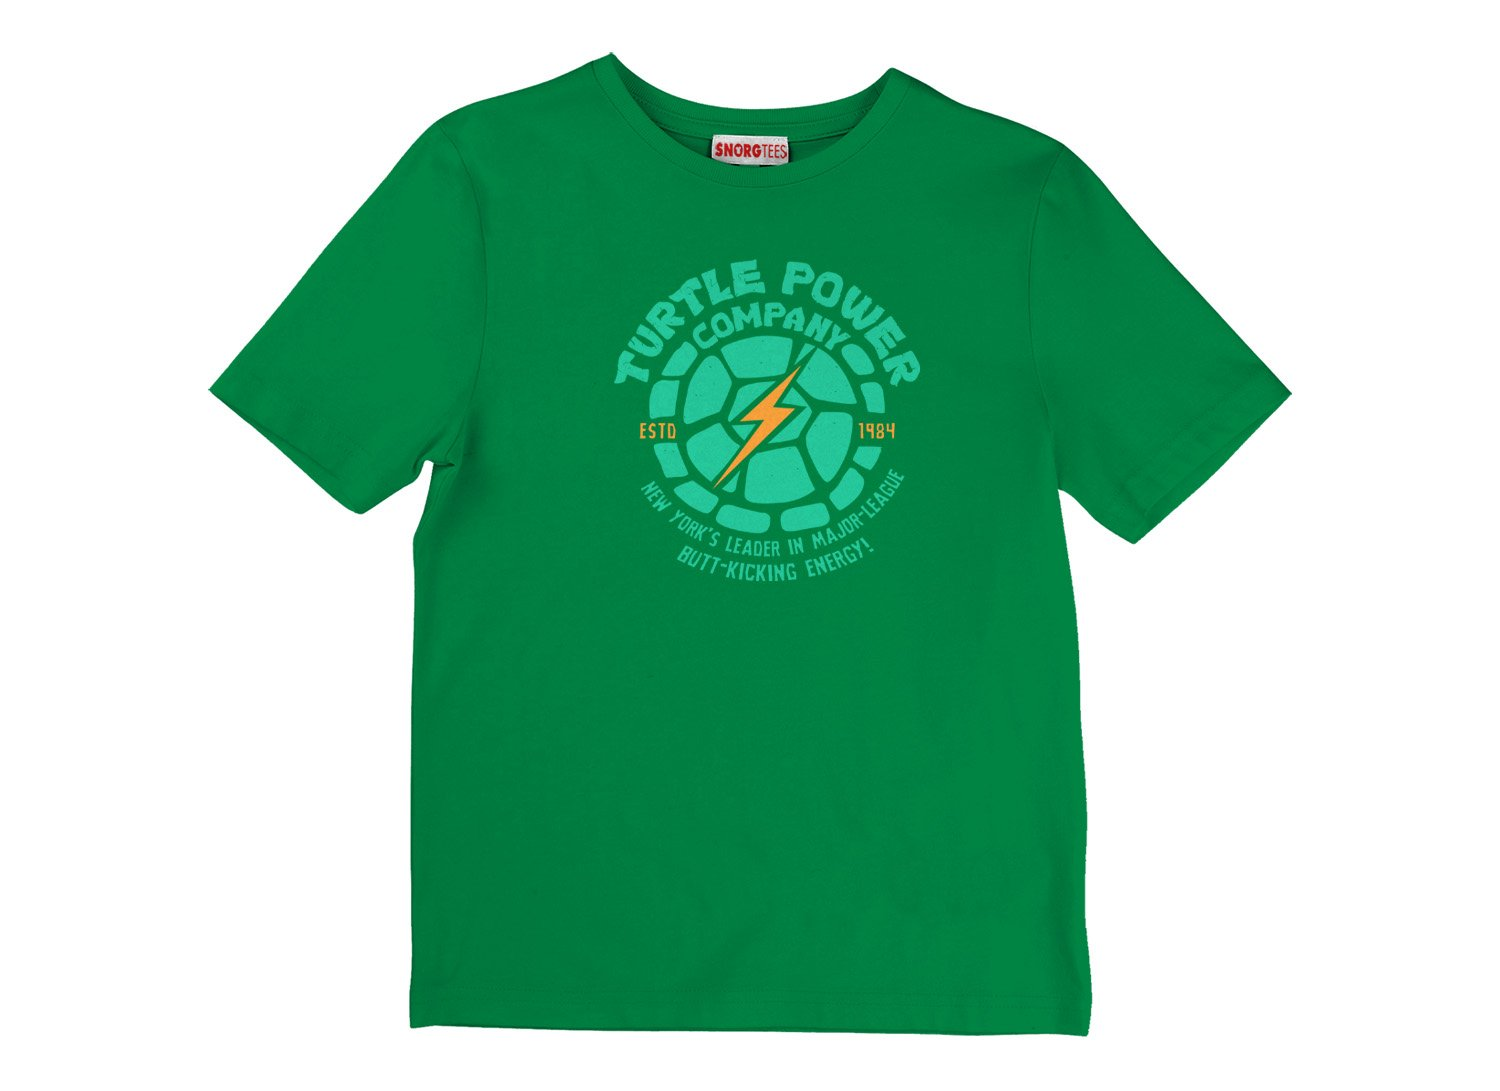 Turtle Power Company on Kids T-Shirt